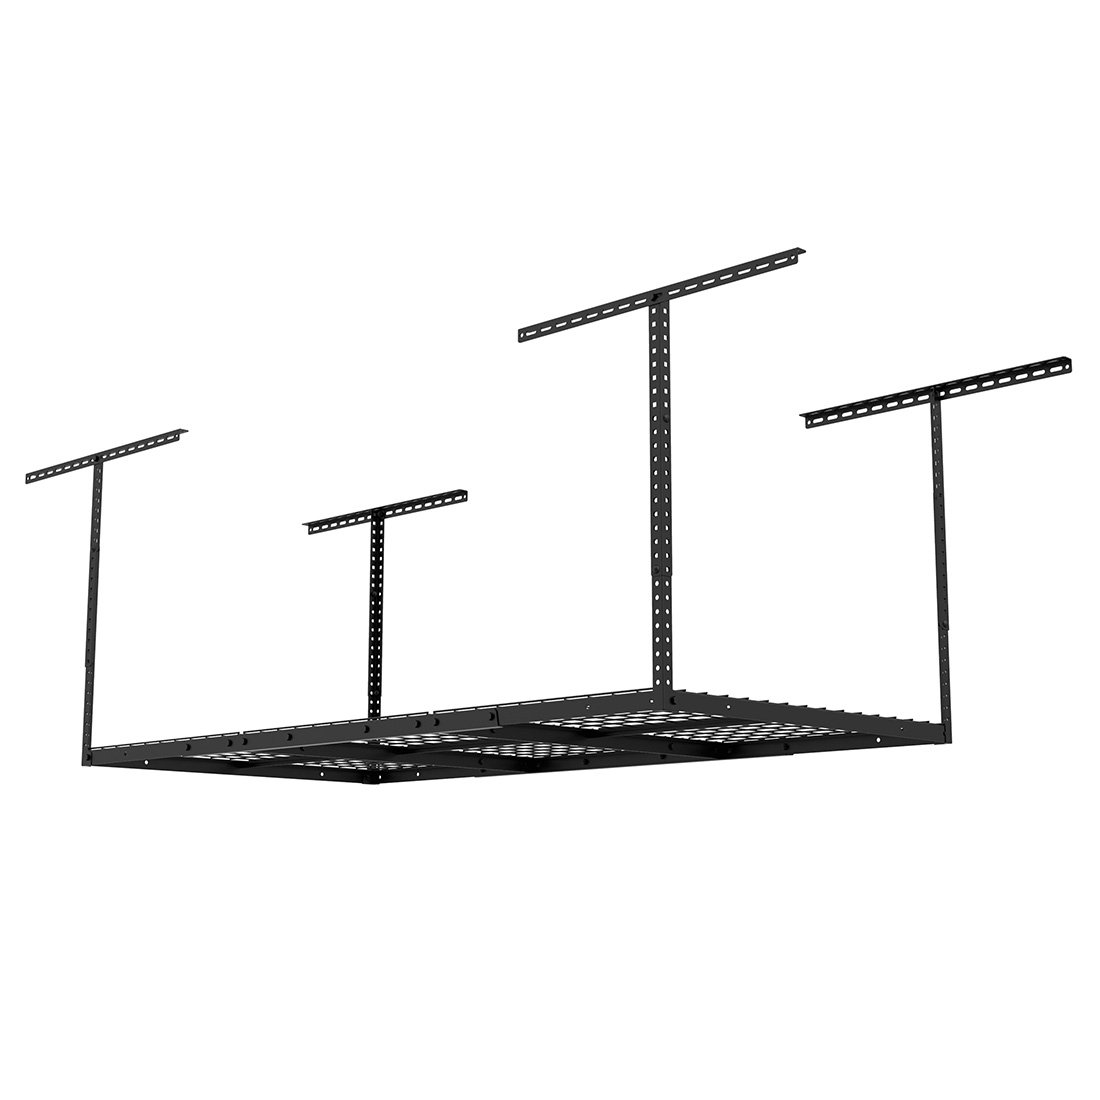 "FLEXIMOUNTS 3x6 Overhead Garage Storage Adjustable Ceiling Storage Rack, 72"" Length x 36"" Width x 40"" Height, Black"